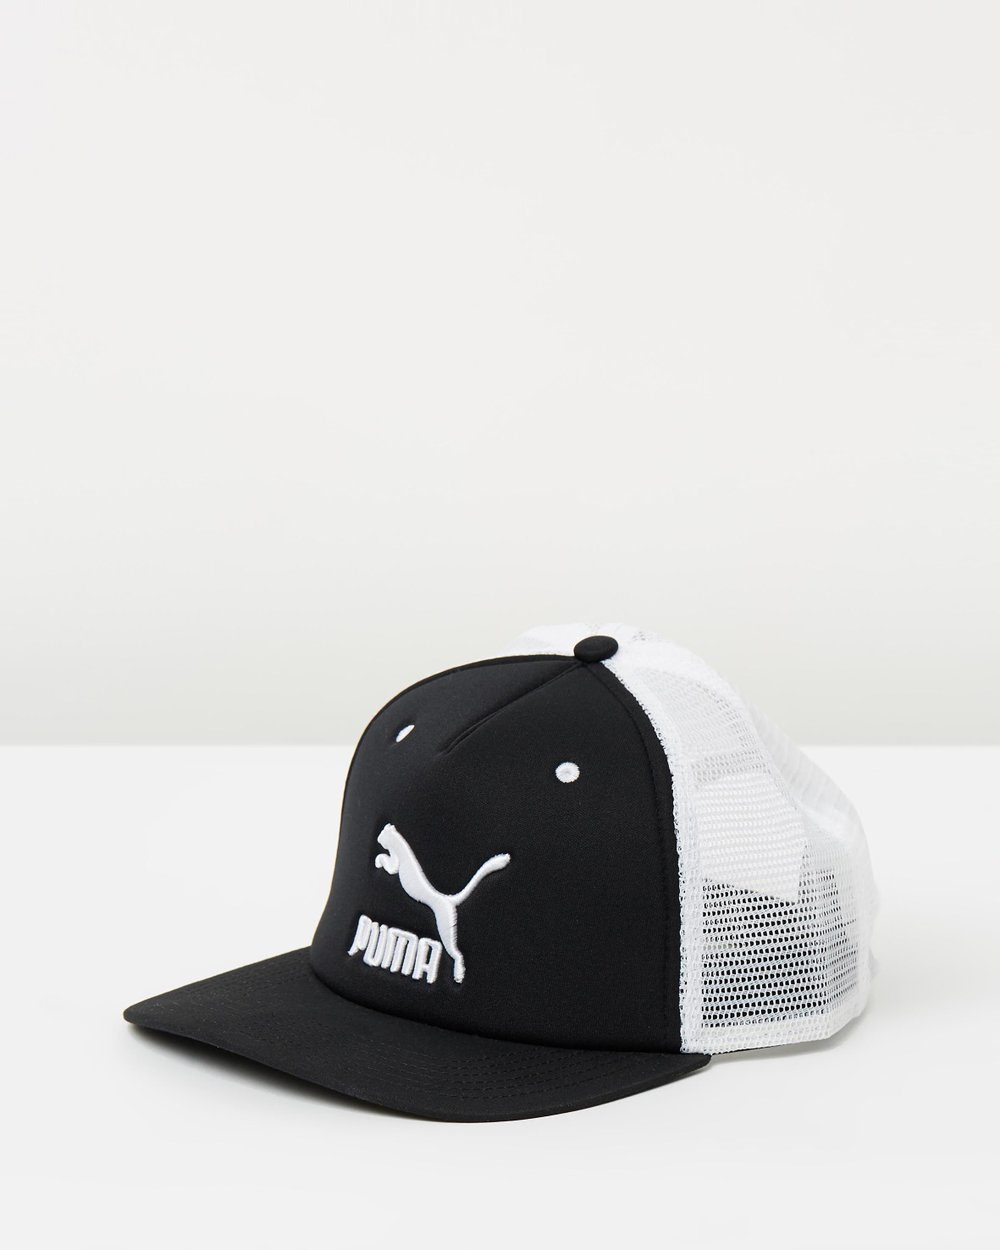 Archive Trucker Cap by Puma Online  8542cf184f13